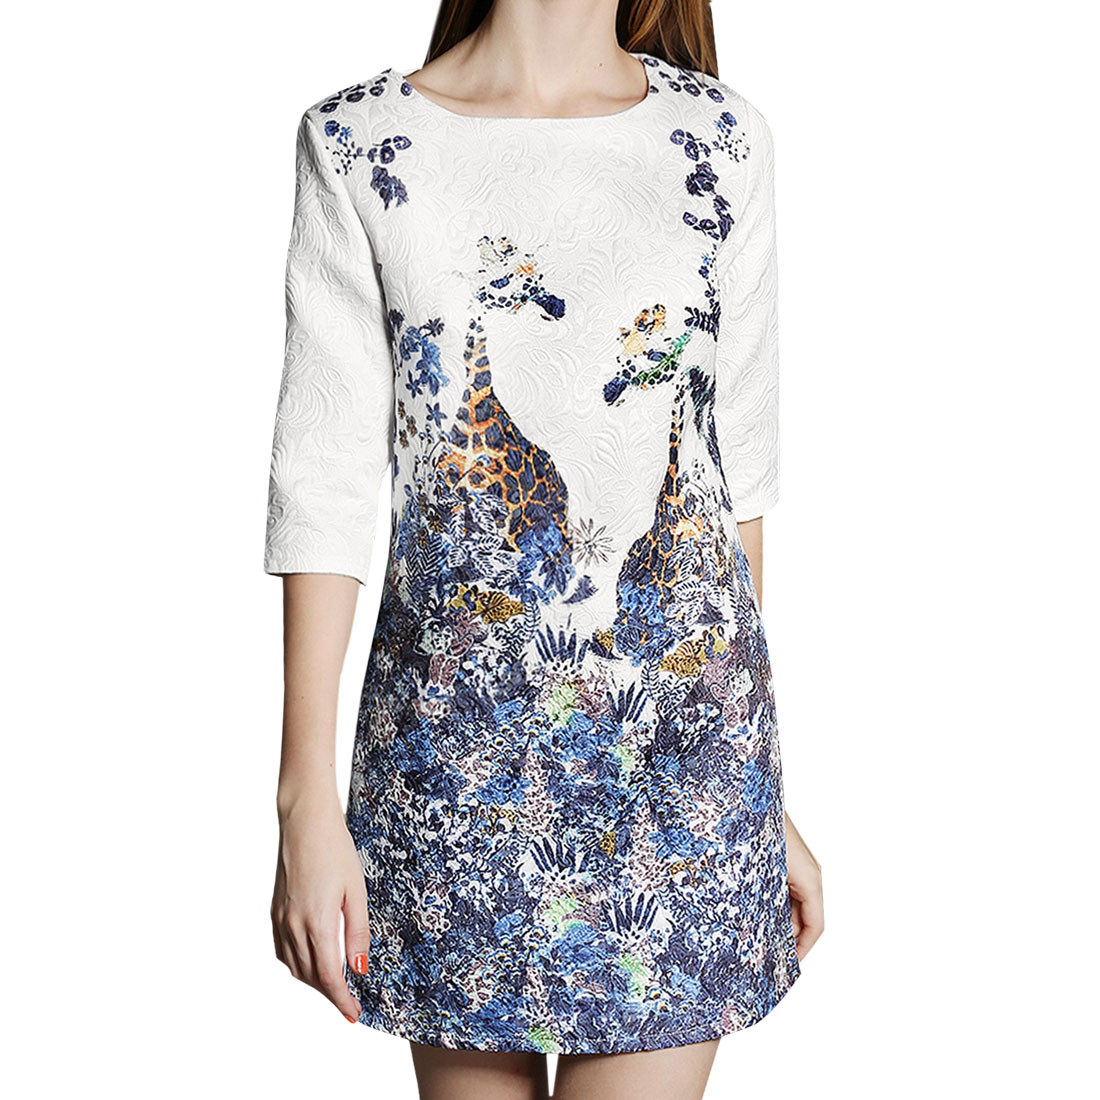 Women's Floral Giraffe Prints Embossed Sheath Dress White (Size M / 8)